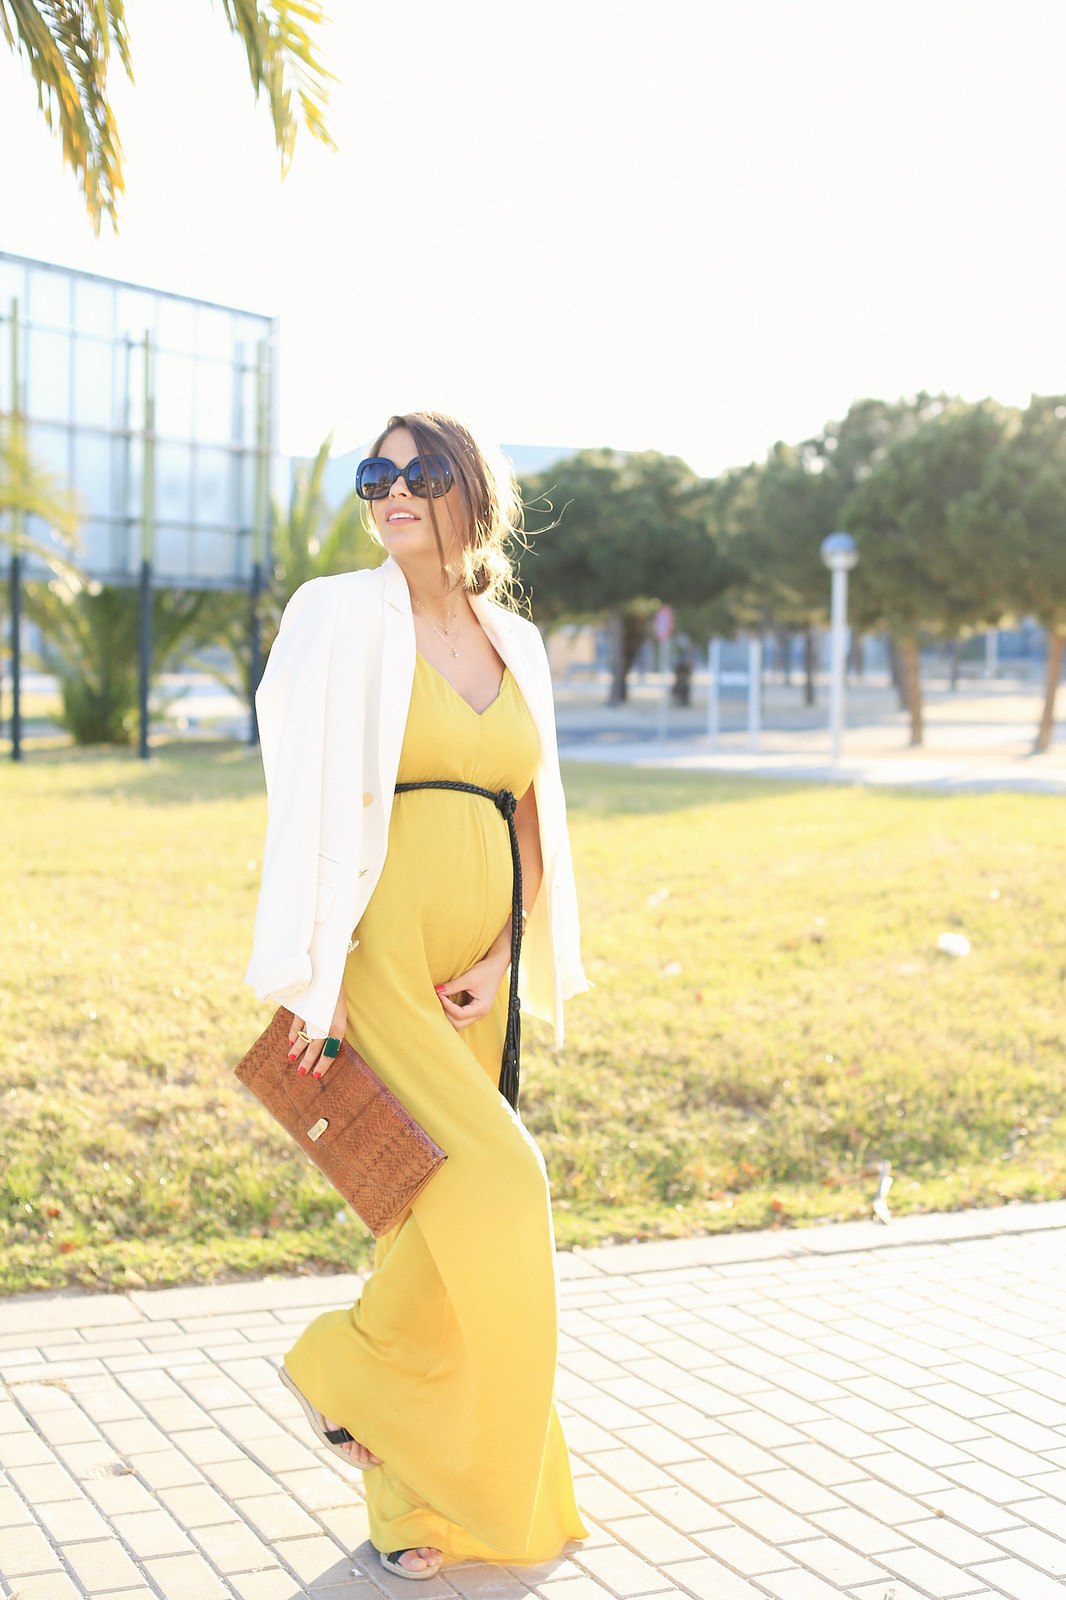 seams-for-a-desire-jessie-chanes-pregnant-formal-outfit-mustard-long-jumpsuit-tous-jewels_6